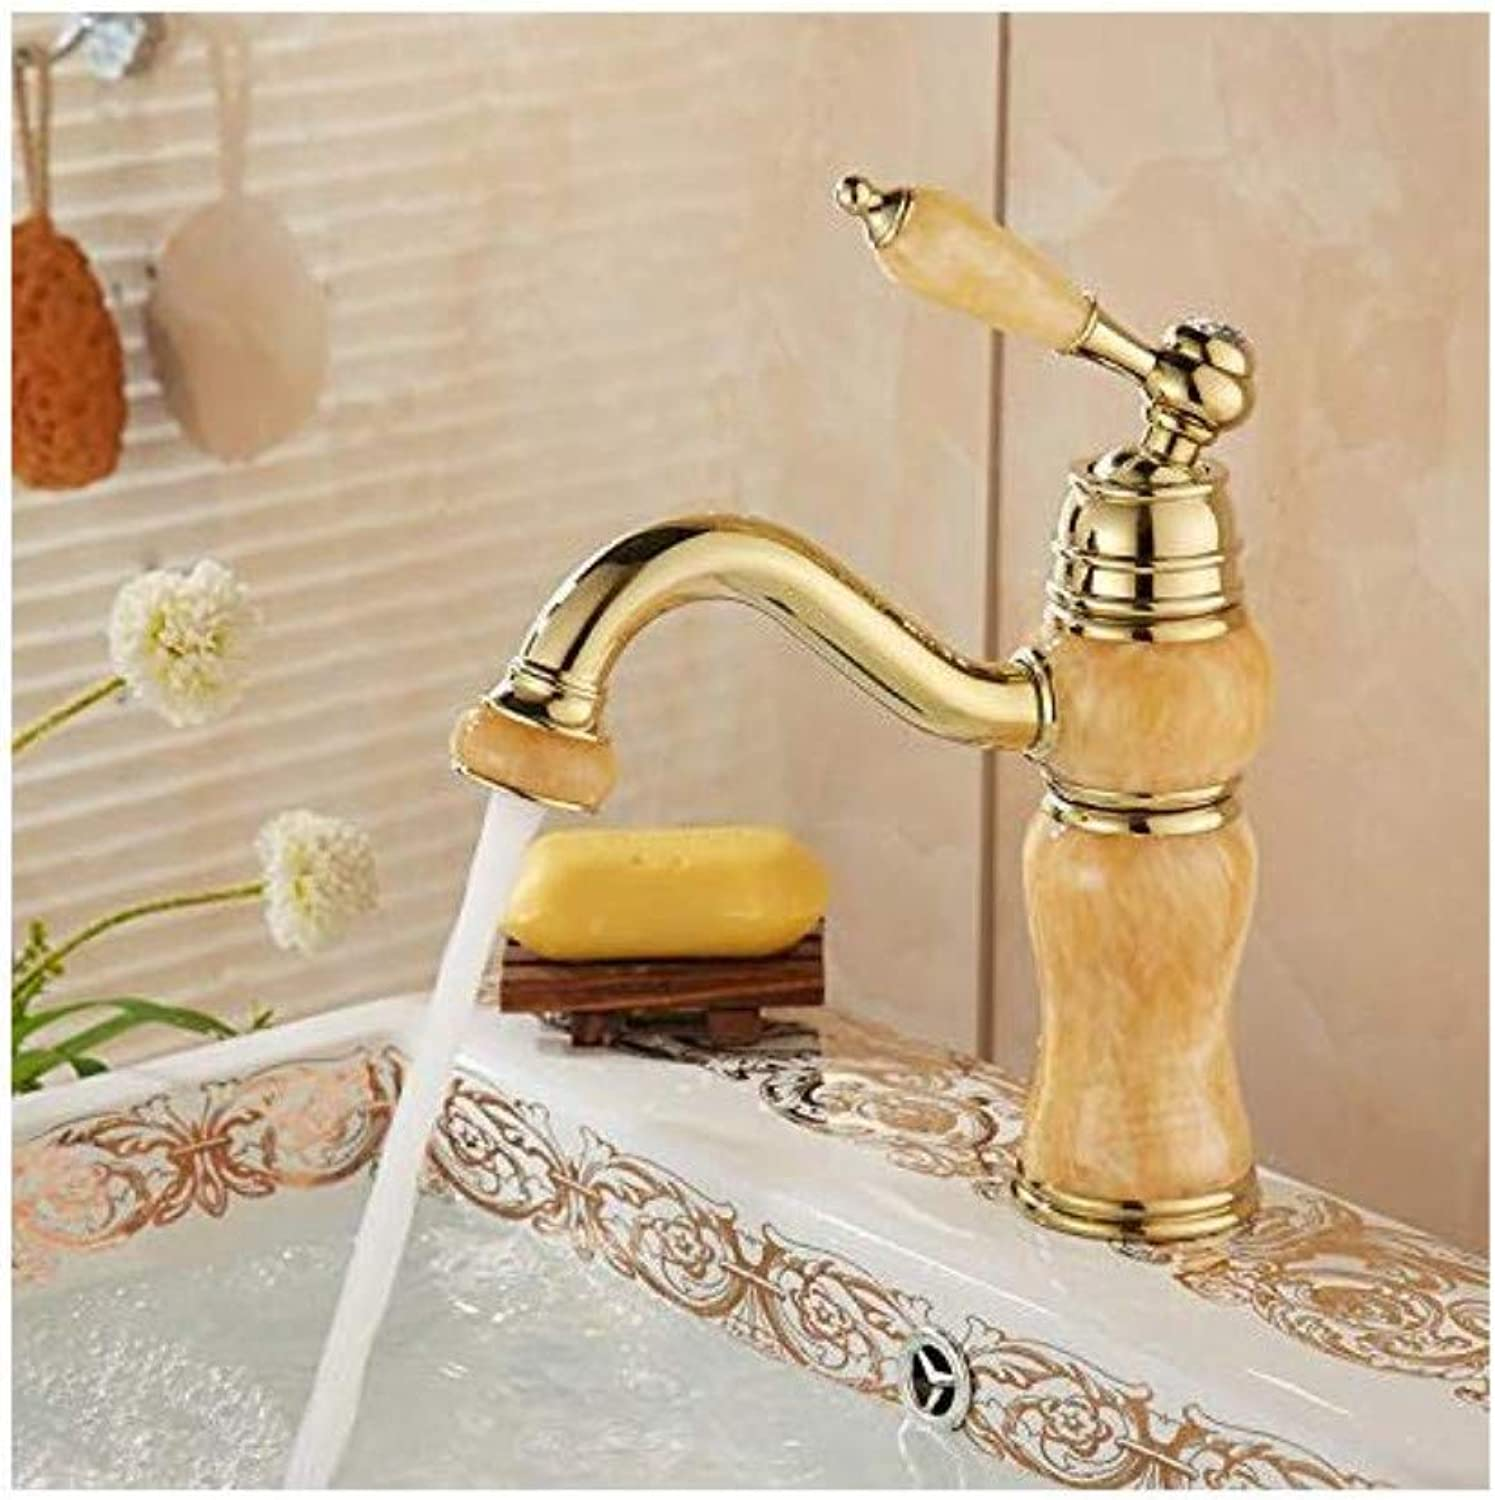 Modern Plated Kitchen Bathroom Faucet Full Copper Jade Faucet 360 Degree redating Hot and Cold Water Faucet